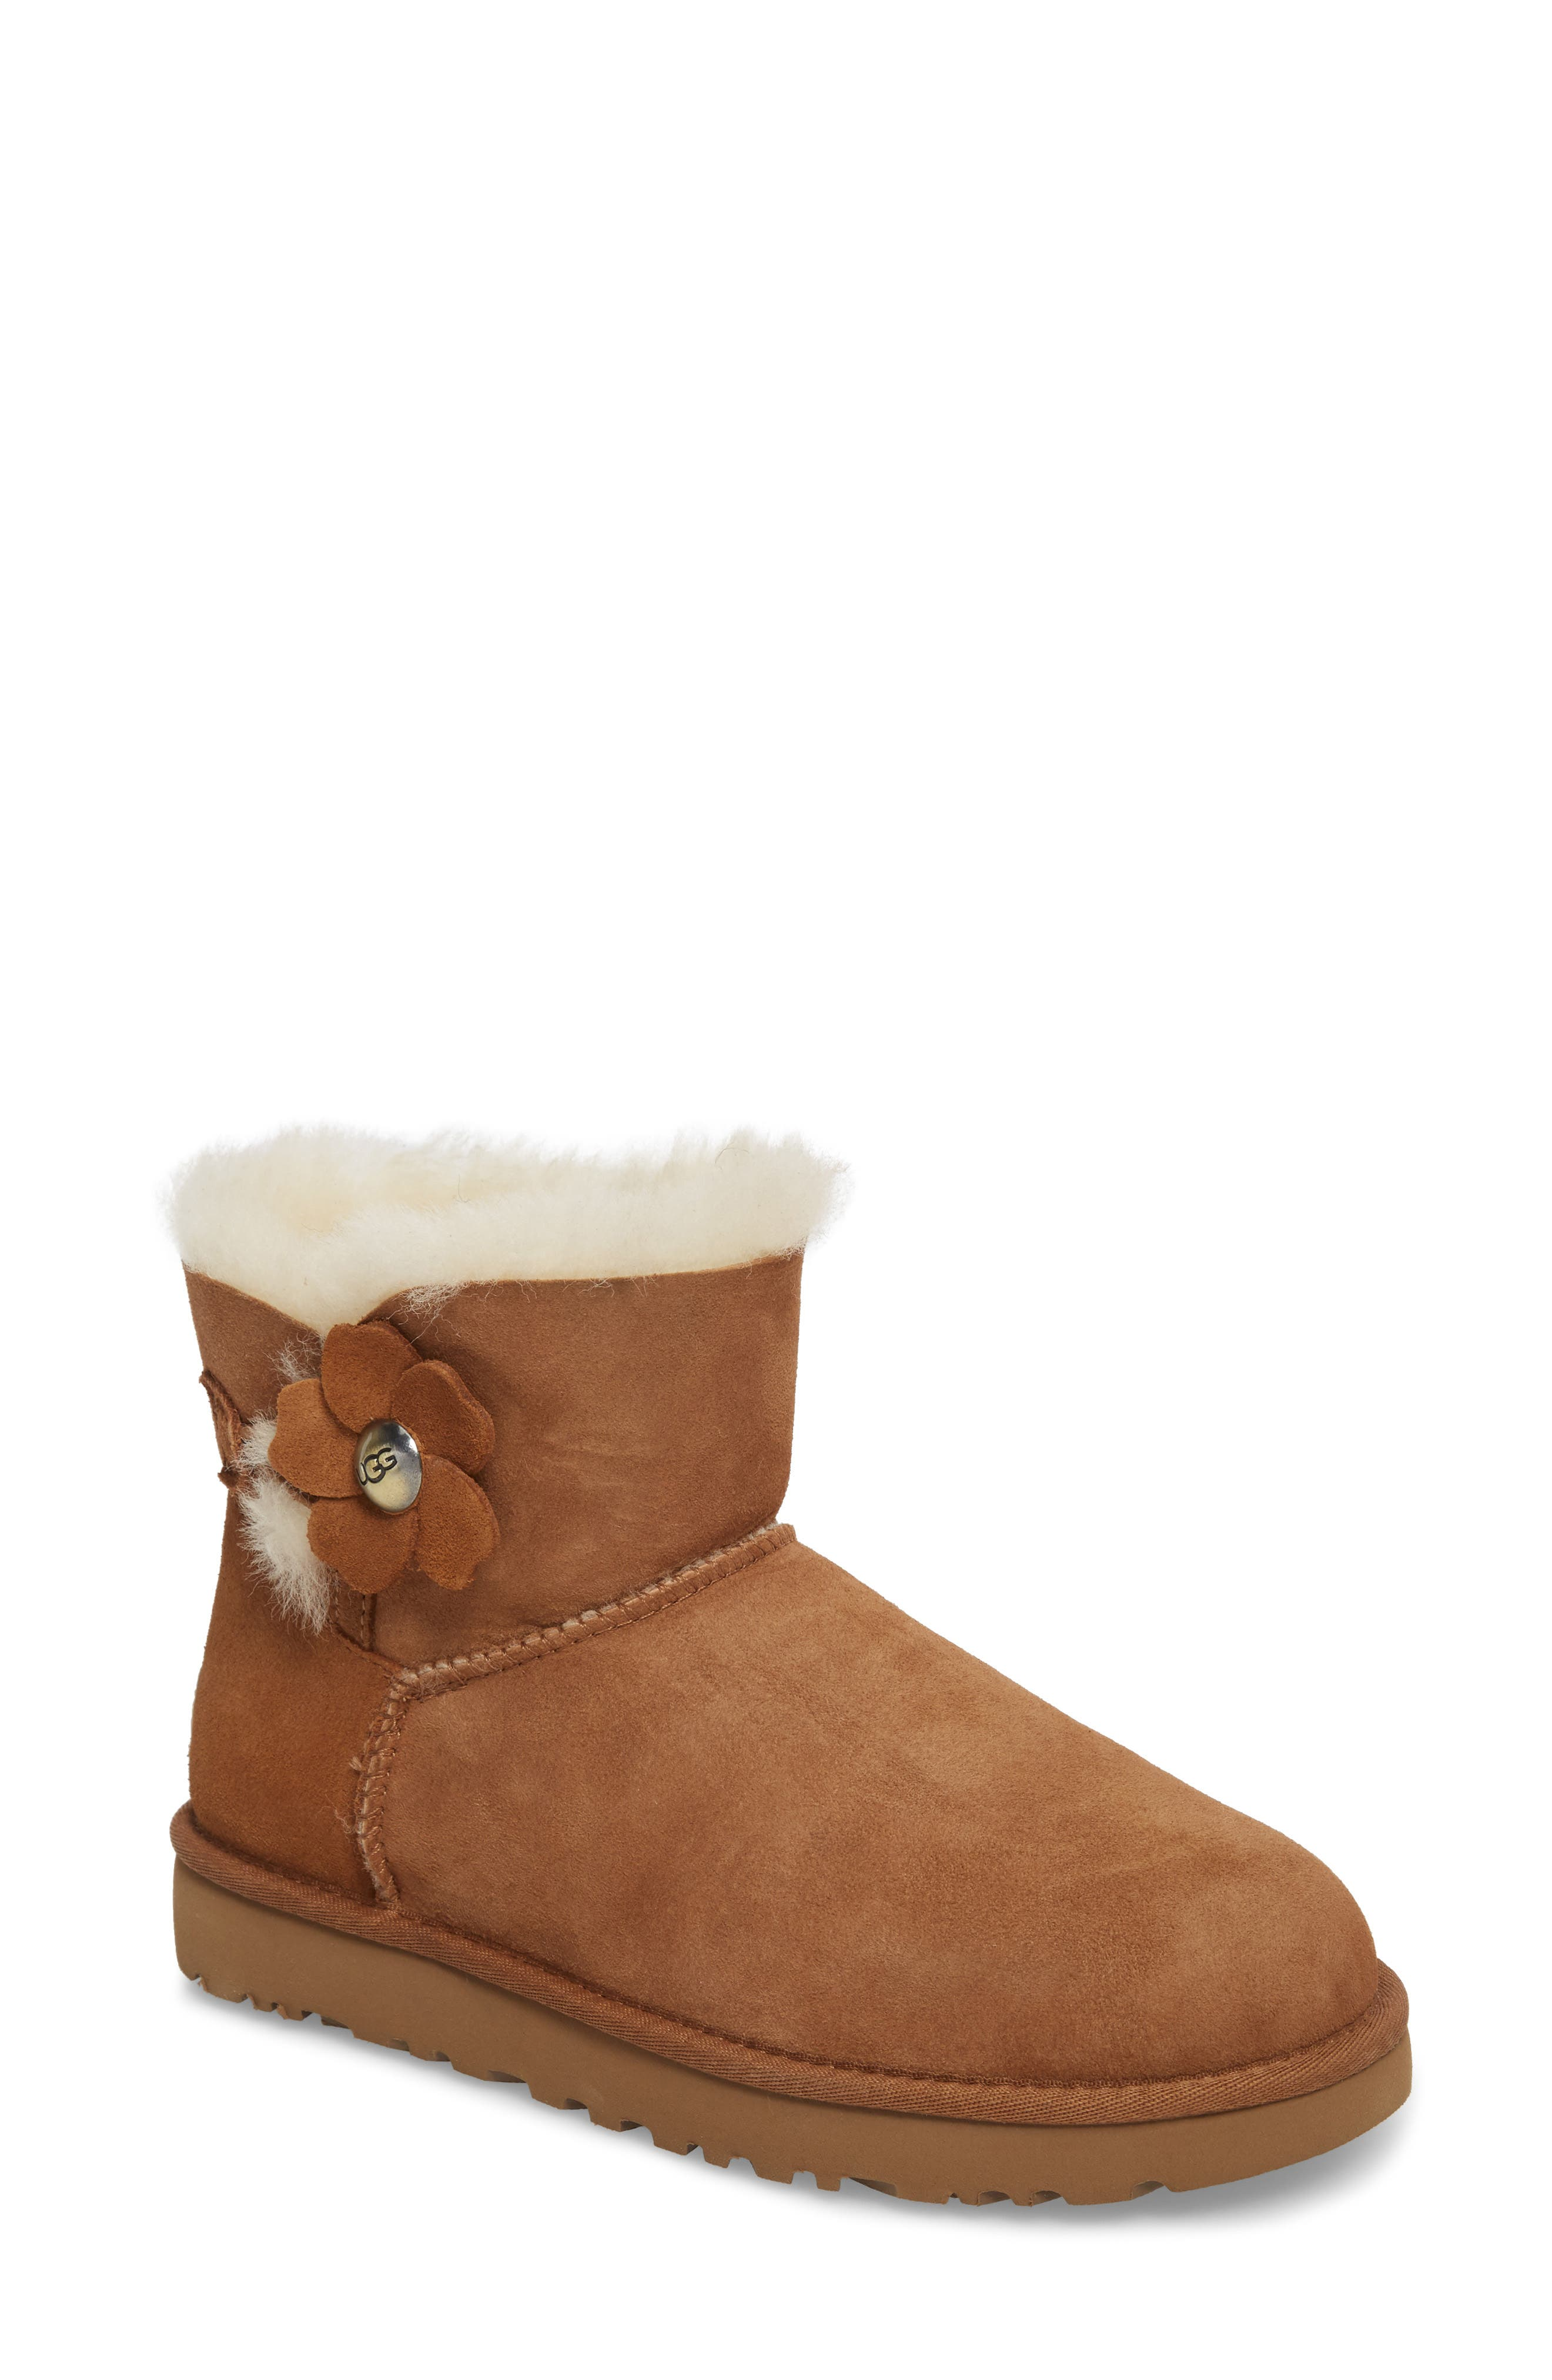 Alternate Image 1 Selected - UGG® Mini Bailey Button Poppy Genuine Shearling Lined Boot (Women)